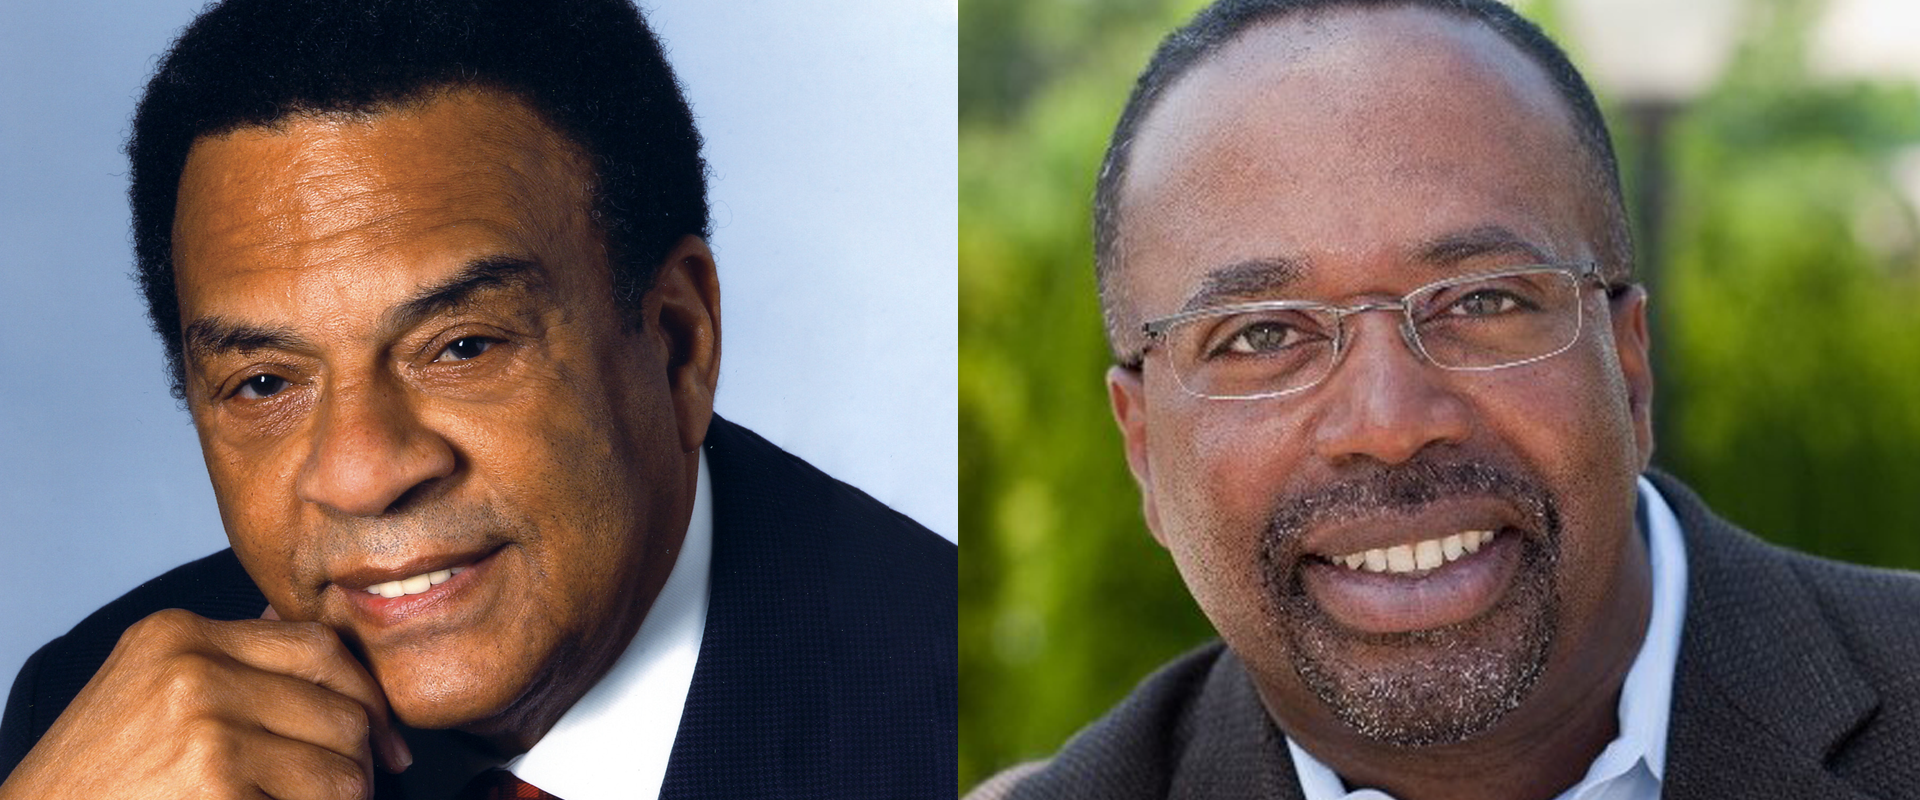 Andrew Young and Julian Phillips